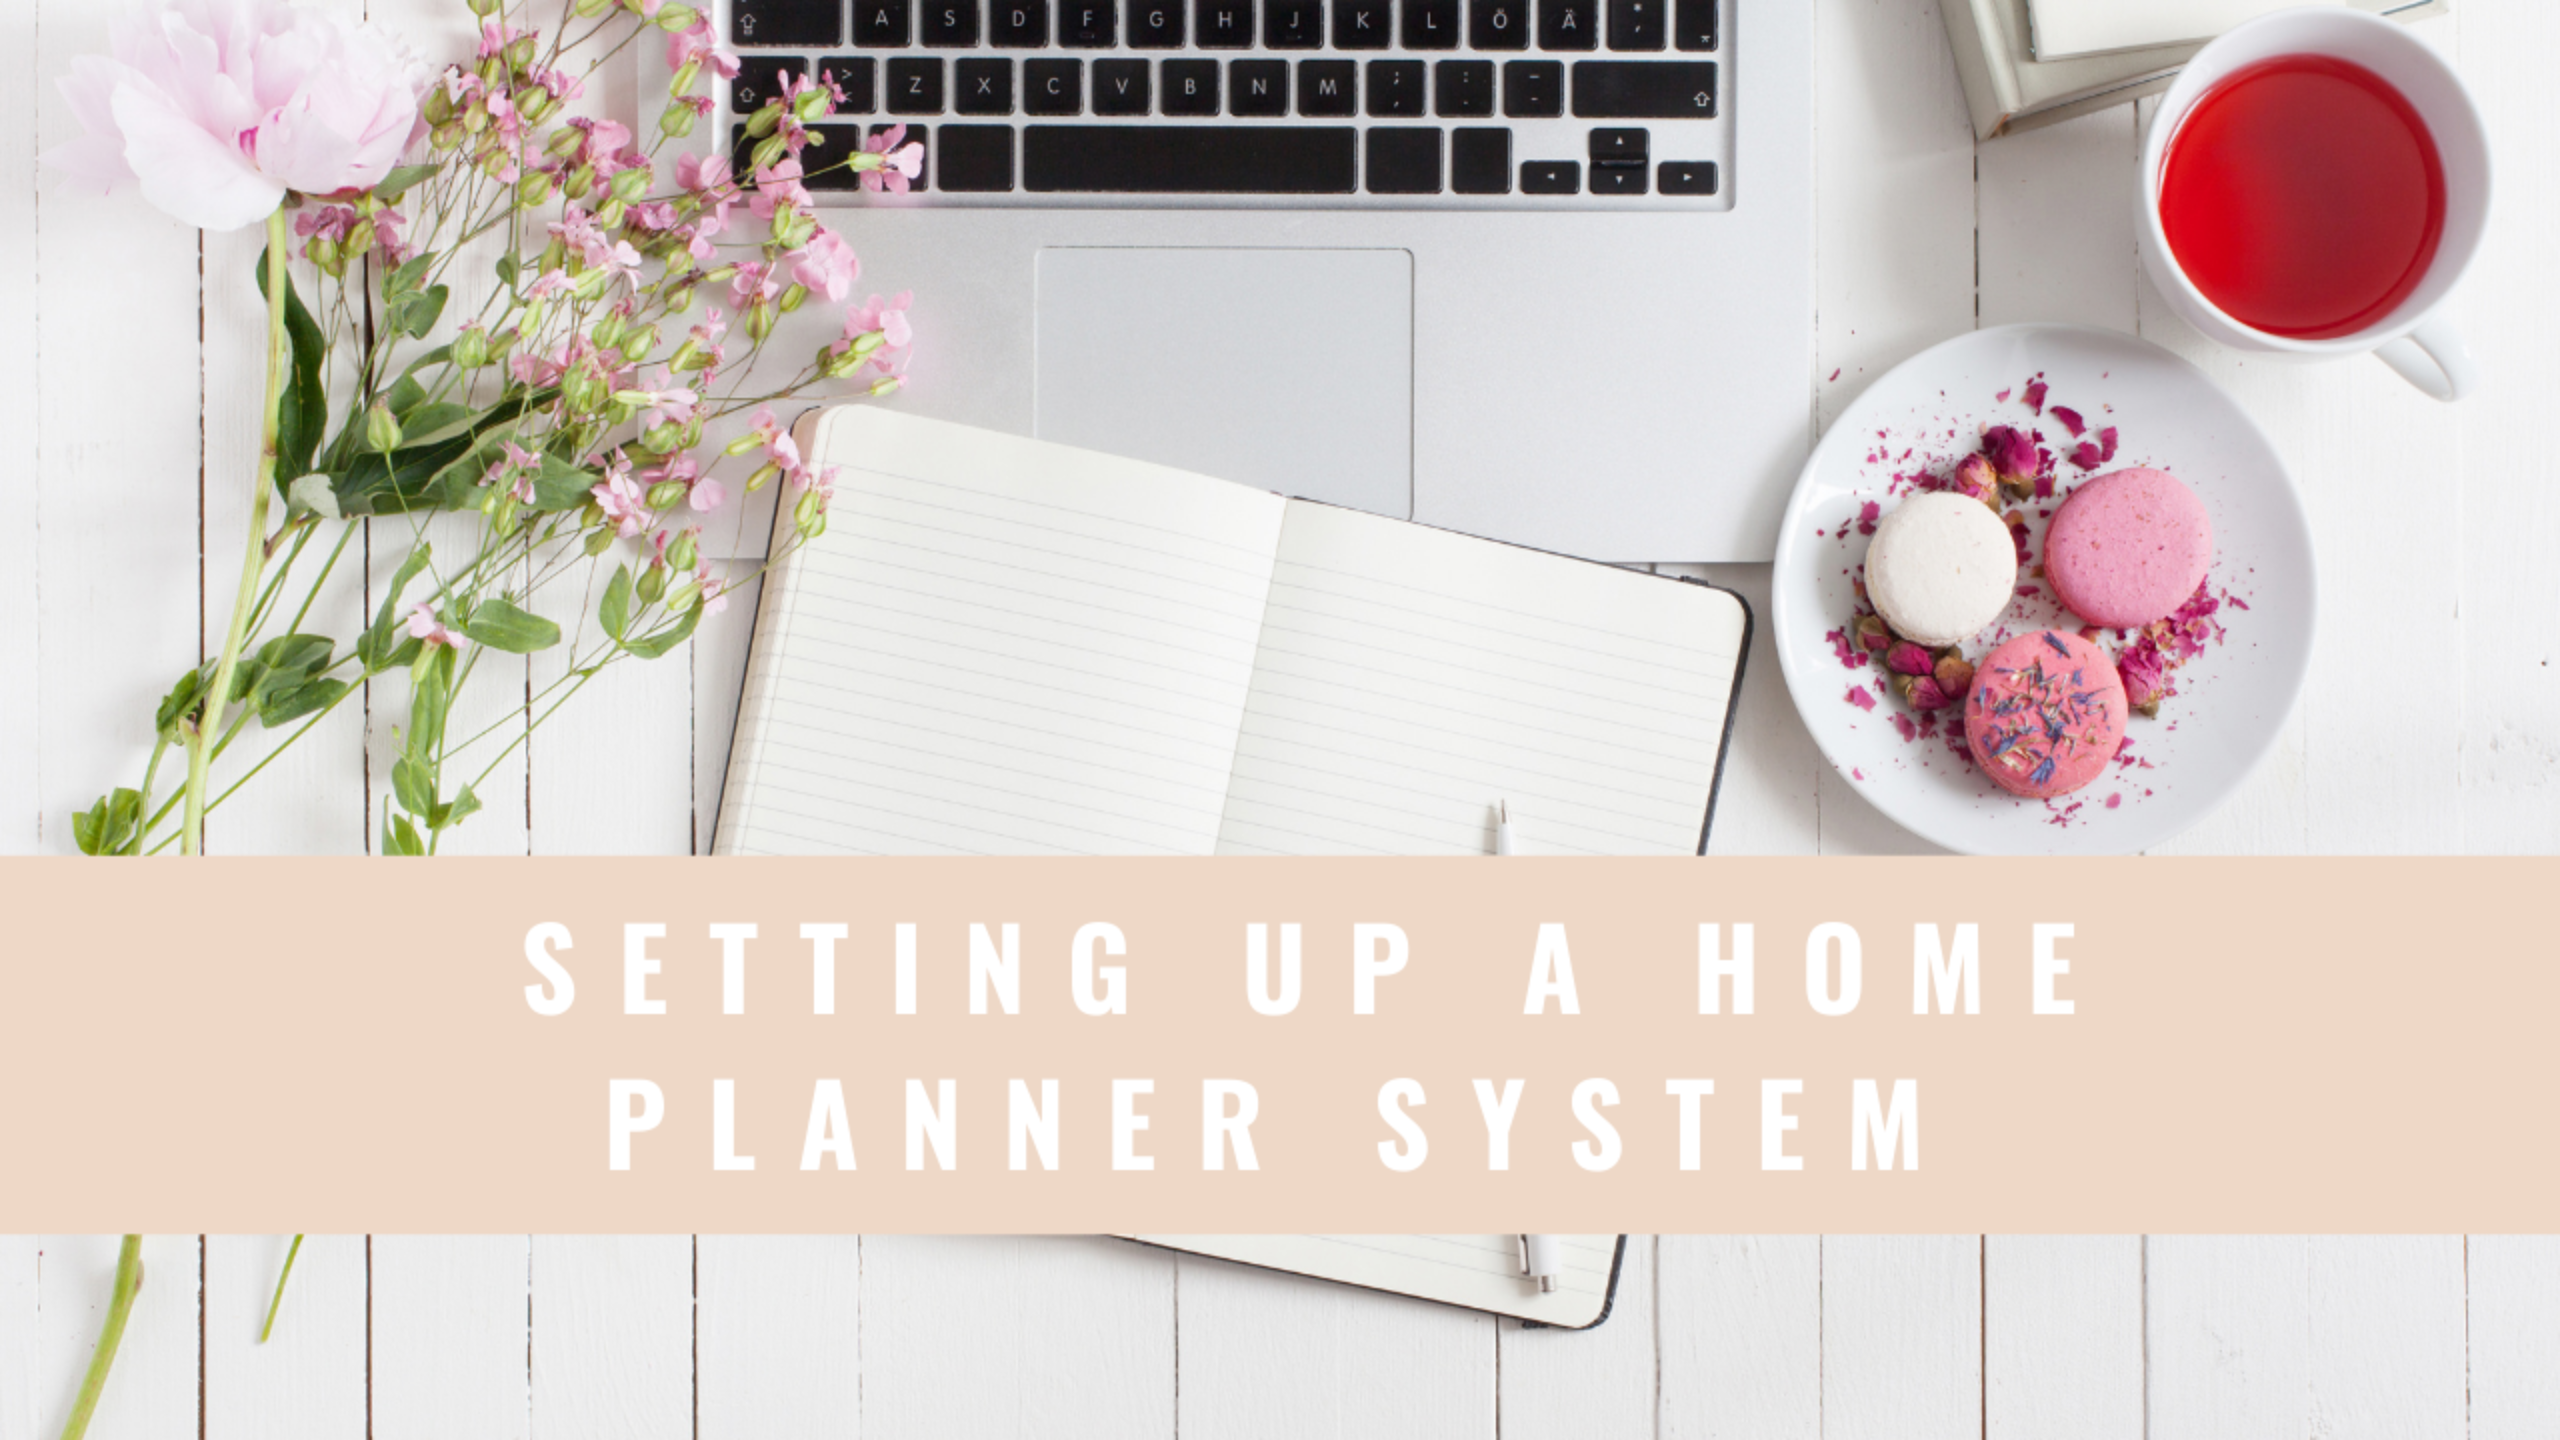 How To Set Up A Home Planning System